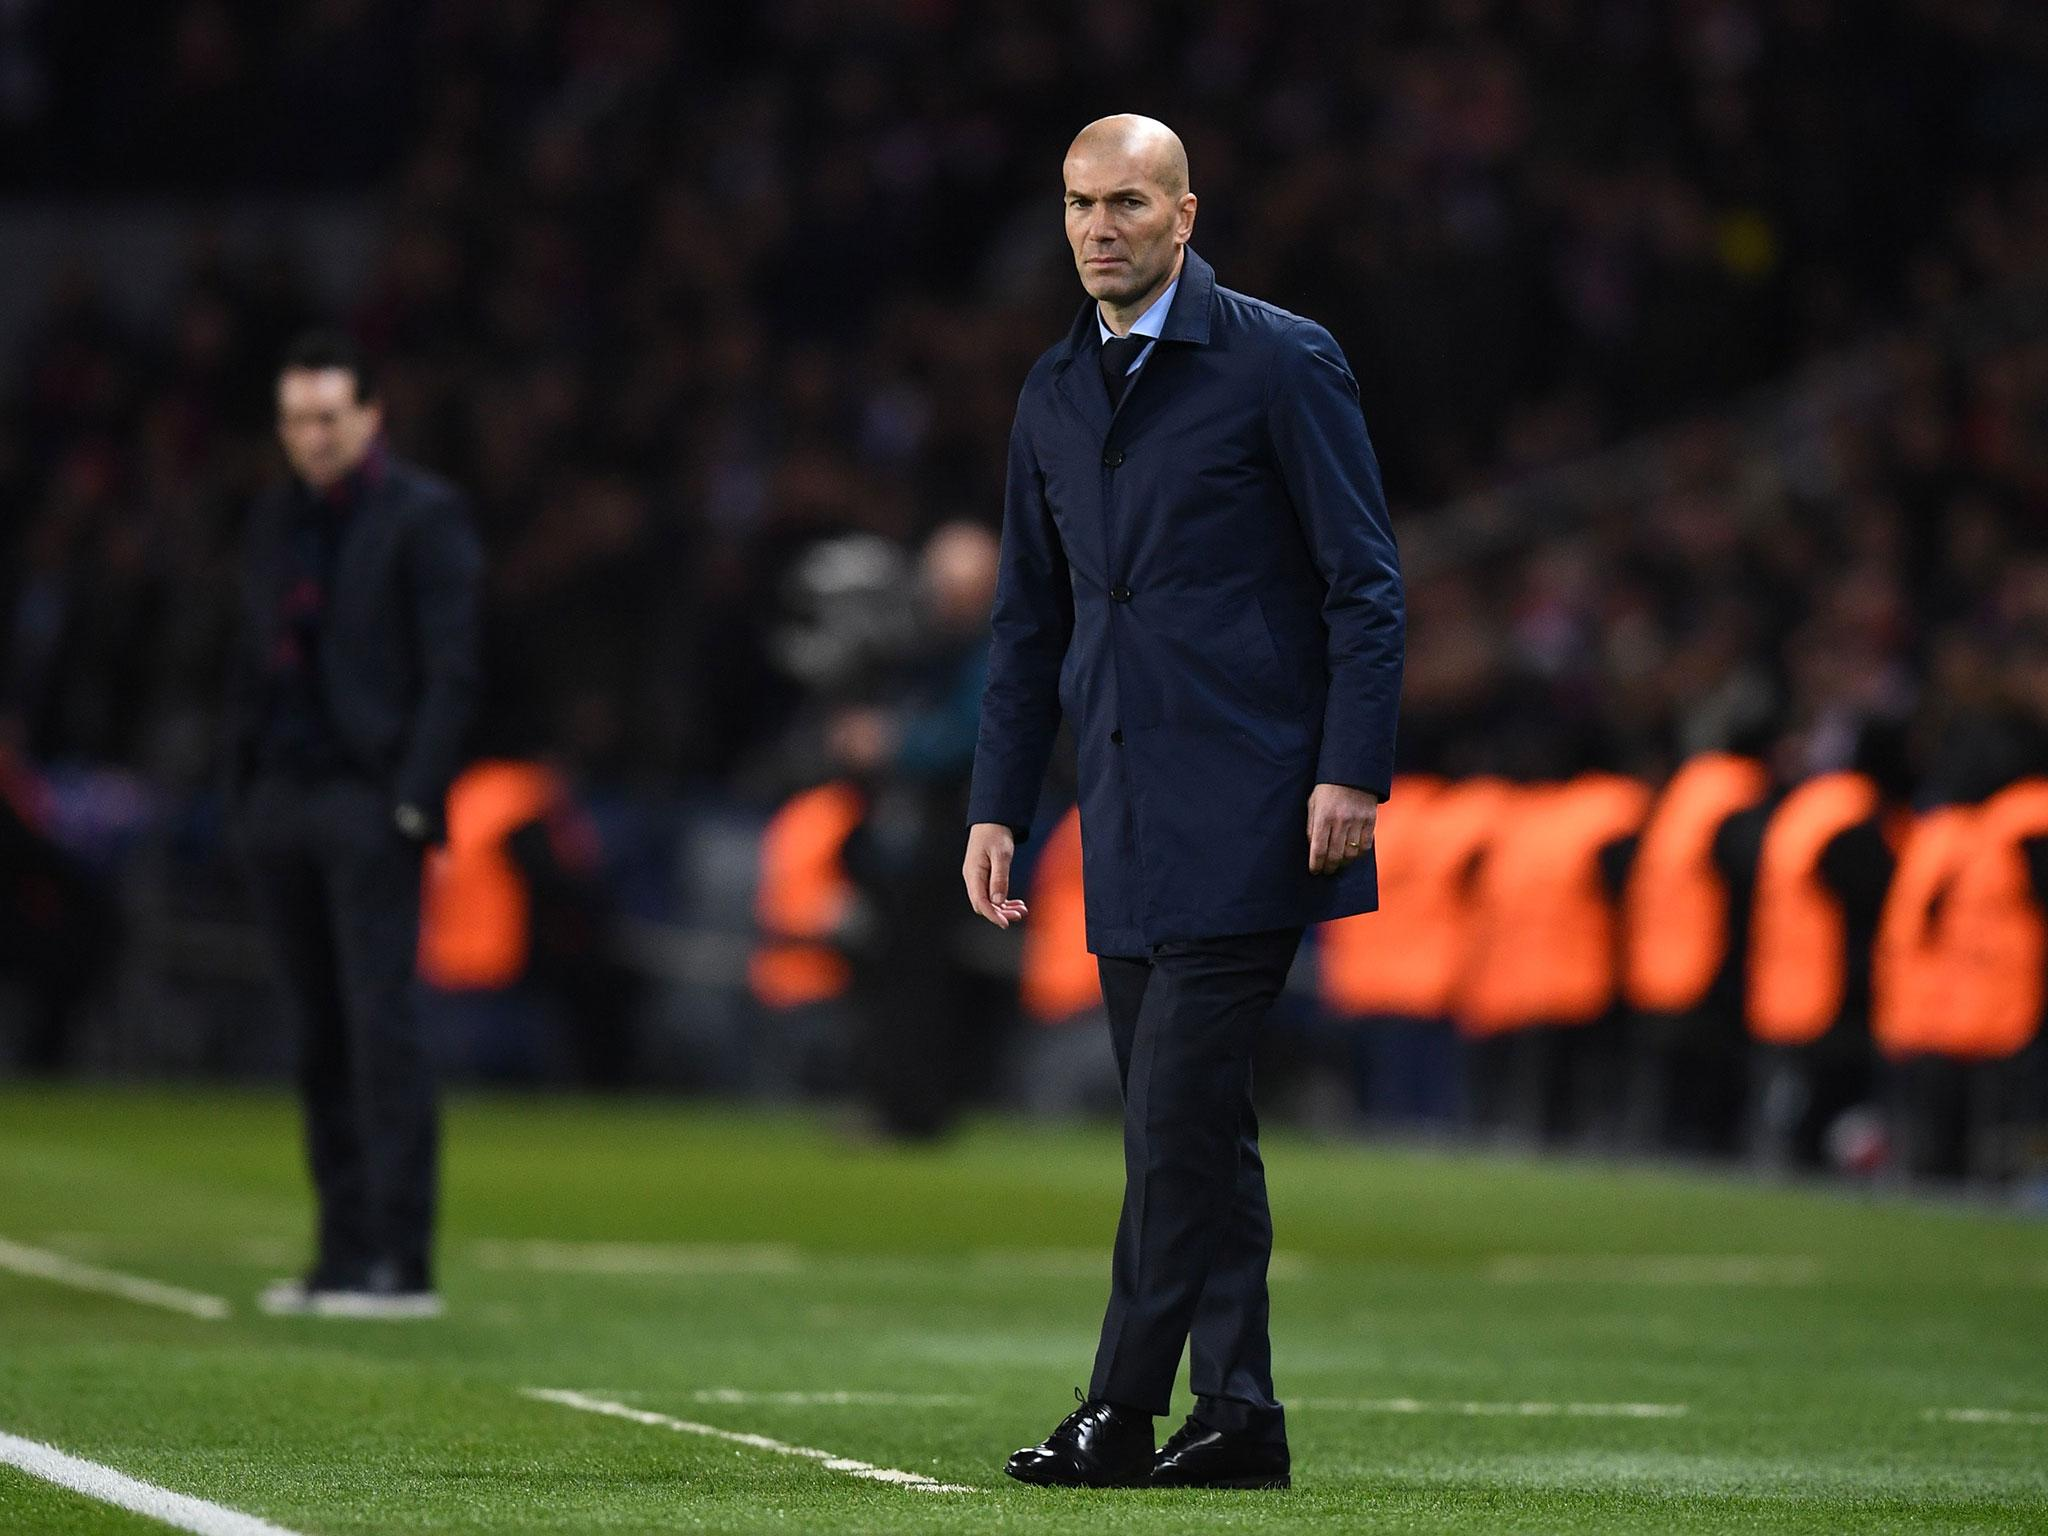 Real Madrid back on track after beating PSG to reach Champions League last eight, says Zinedine Zidane